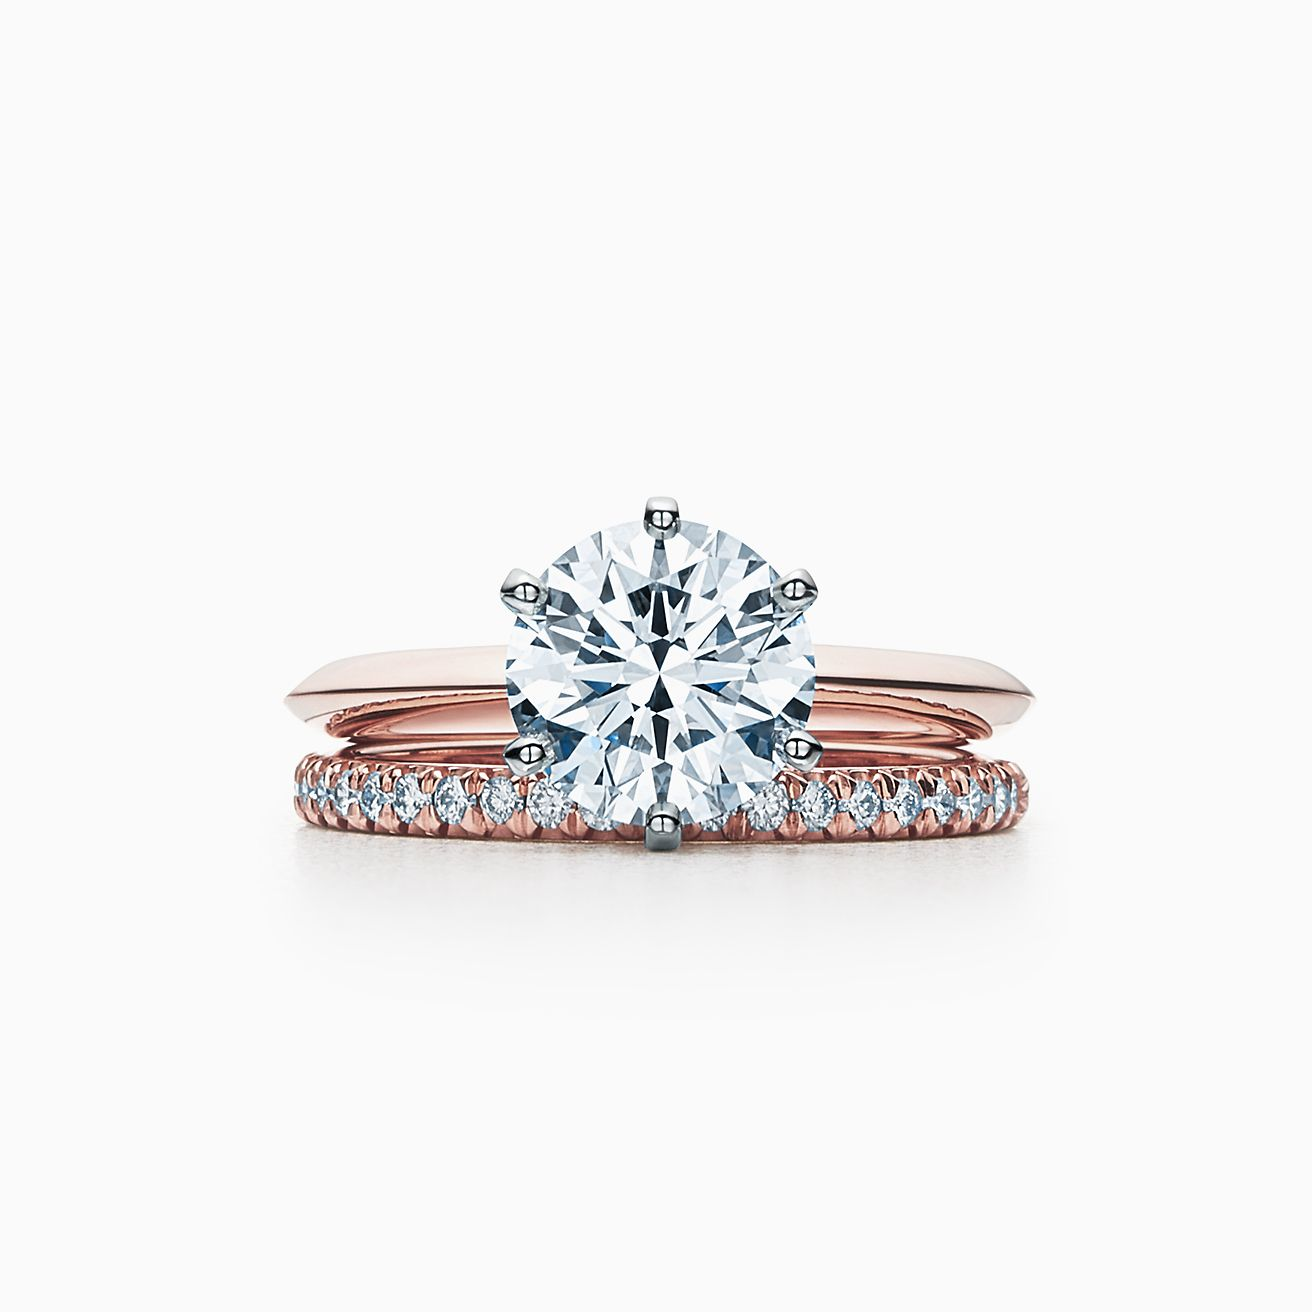 Wedding Rings Pictures.The Tiffany Setting Engagement Ring In 18k Rose Gold